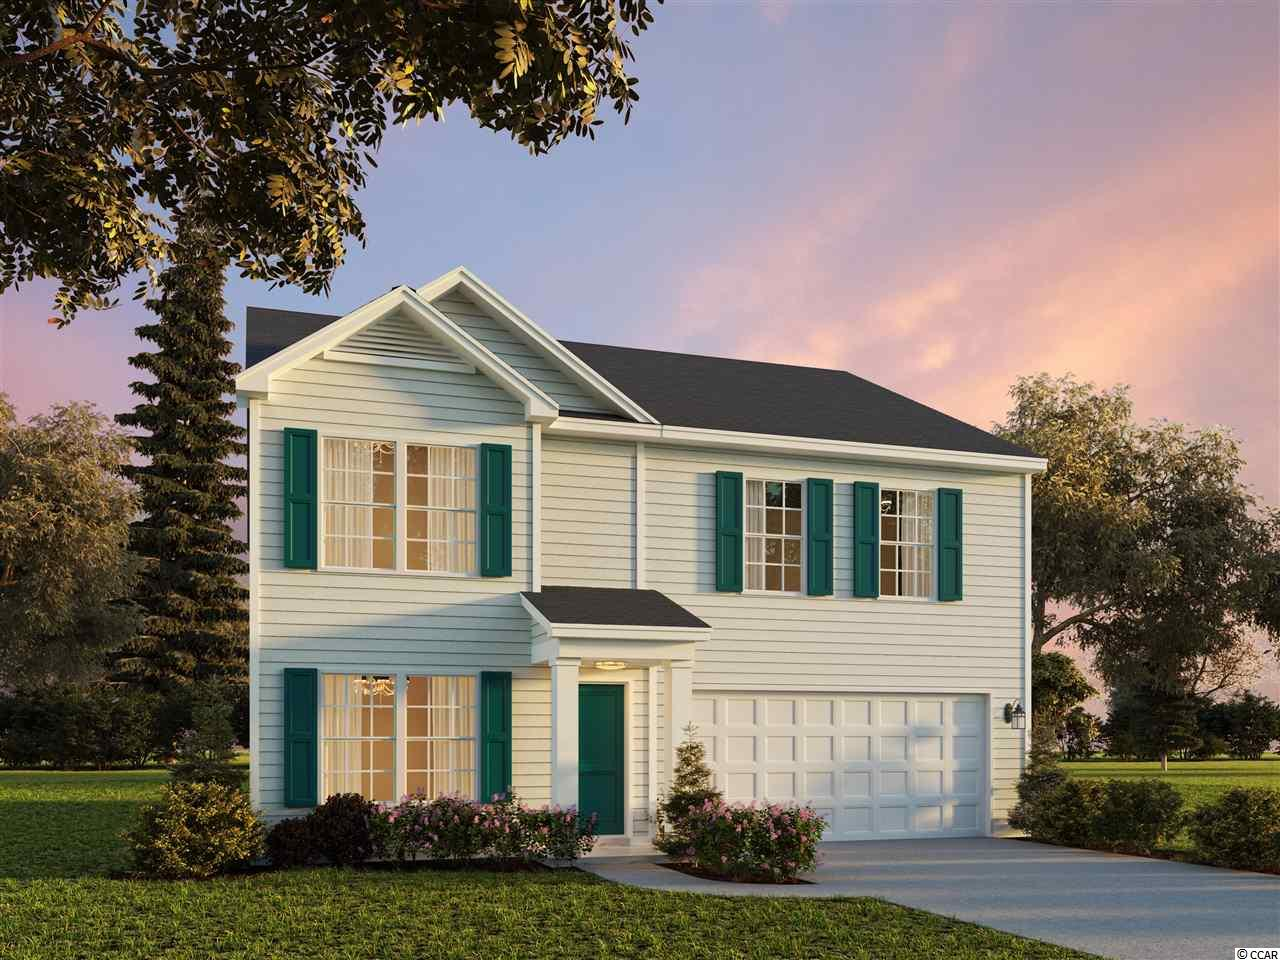 This is a to be built home, taking reservations to build in new phase.  Stop by Sales Center for details.   Hampton Park is a natural Gas Community located on 707 near 544. Easy access to 31, fantastic location! We are located minutes from beaches, shopping, golf, restaurants, medical facilities and more. This is a small 80 home community that will feature lots that view the pond, as well as backyards that have wooded views; a pool and sidewalks. This plan features a living room or study down/ 4 bedrooms upstairs and a den.  Can convert to 5 bedrooms for small charge. *Photos are of model home and do not reflect color selections and options of actual unit for sale.*